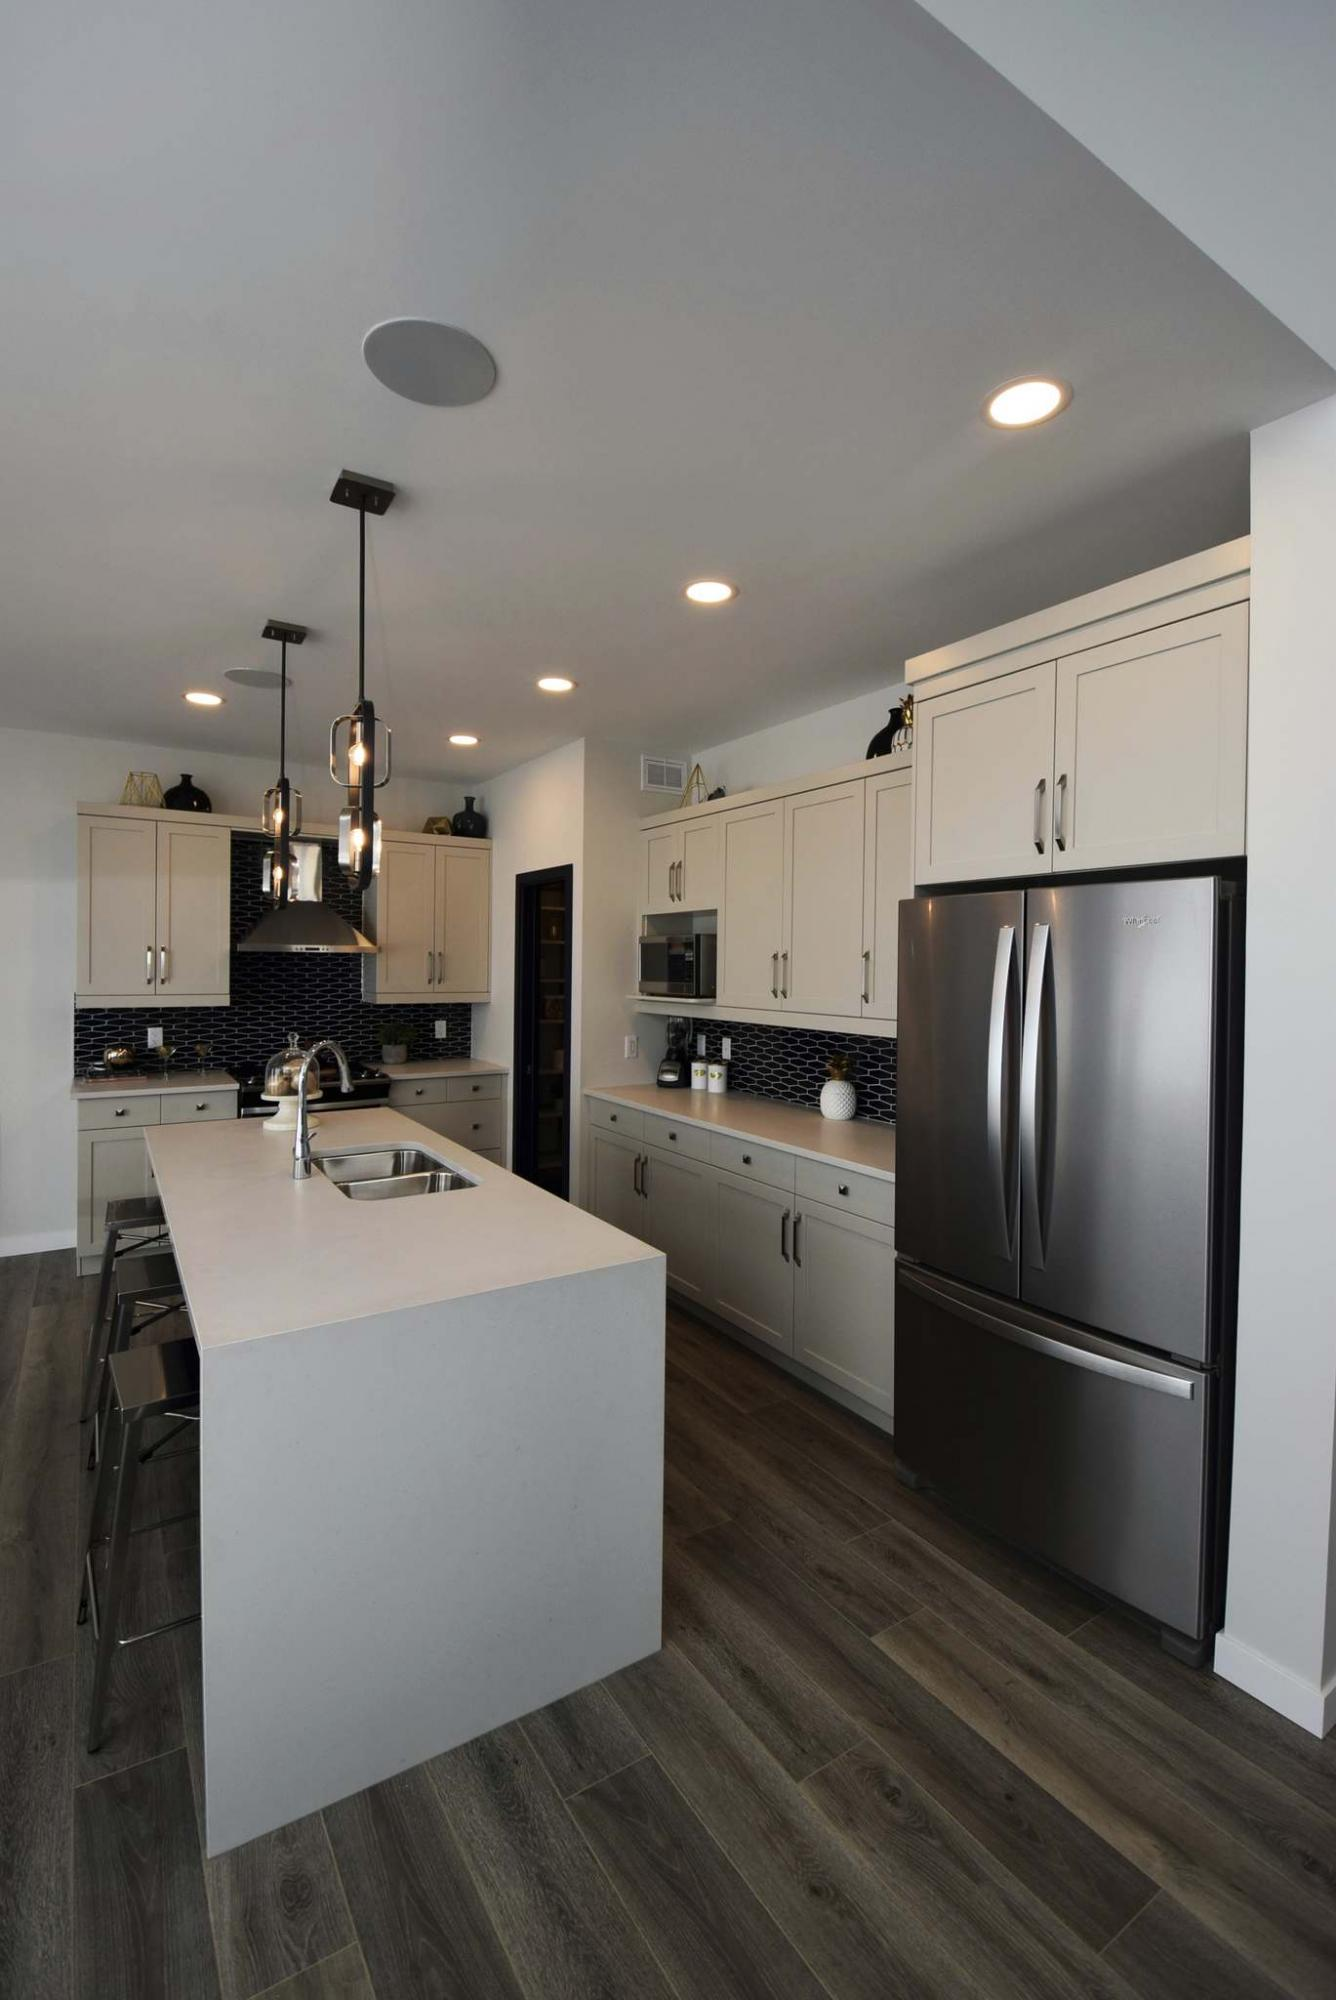 <p>Todd Lewys / Winnipeg Free Press</p><p>There are more than 120 stunning new homes to check out in the Spring Parade of Homes. </p>